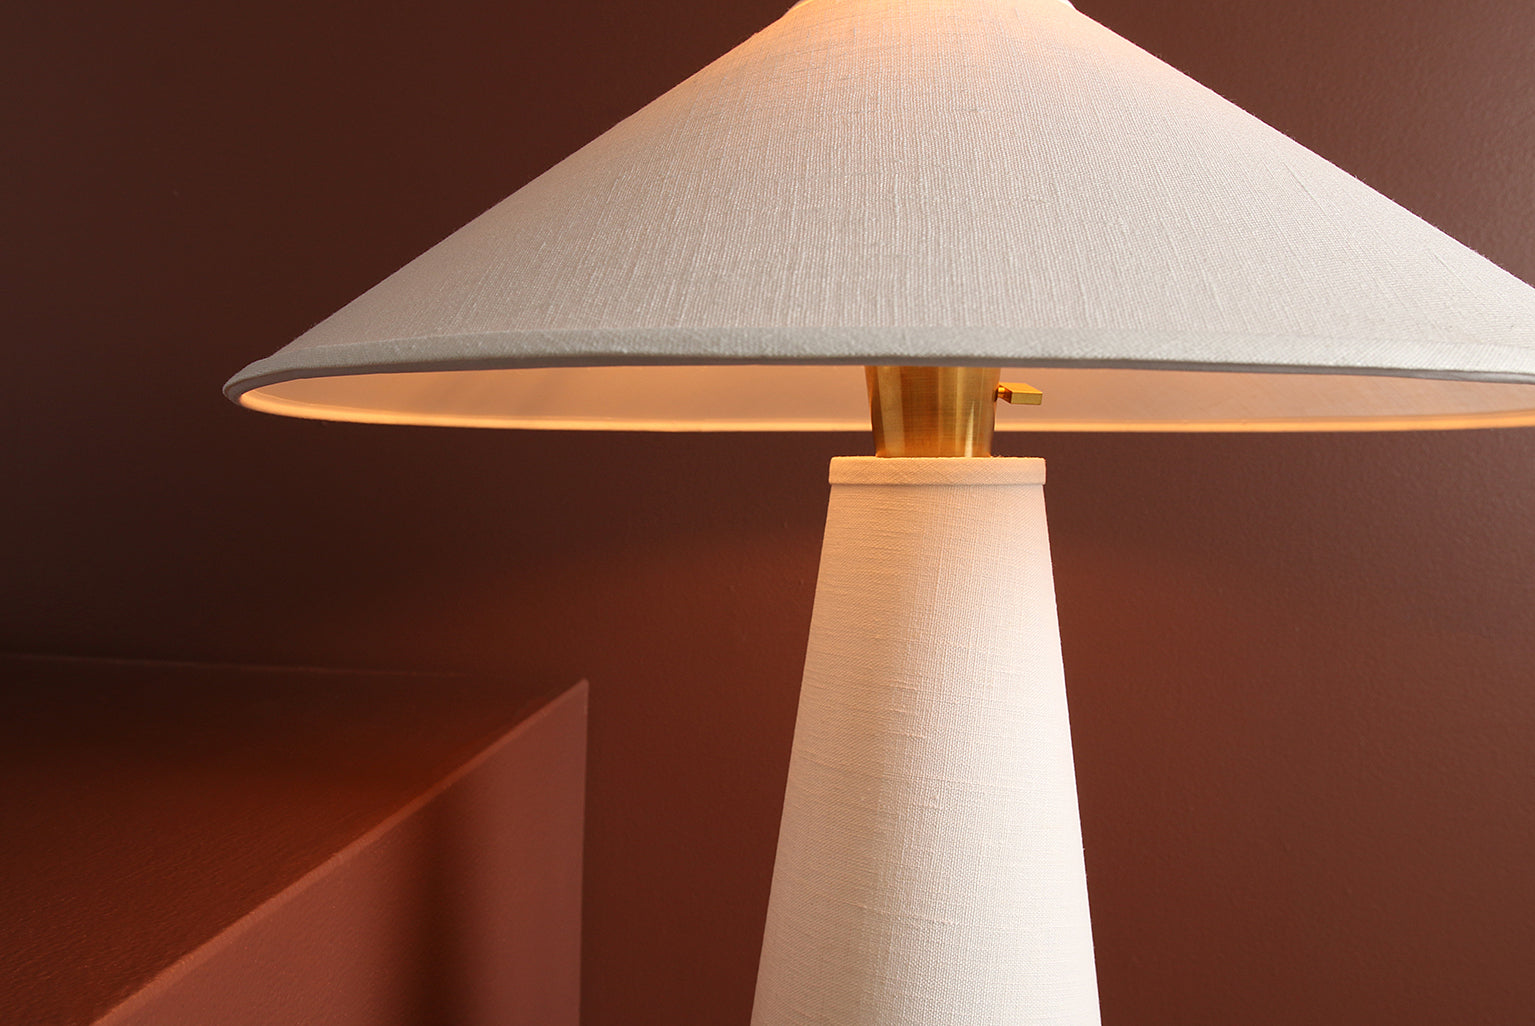 Linden Table Lamp in Cream Linen, Walnut Base, and Brass Details